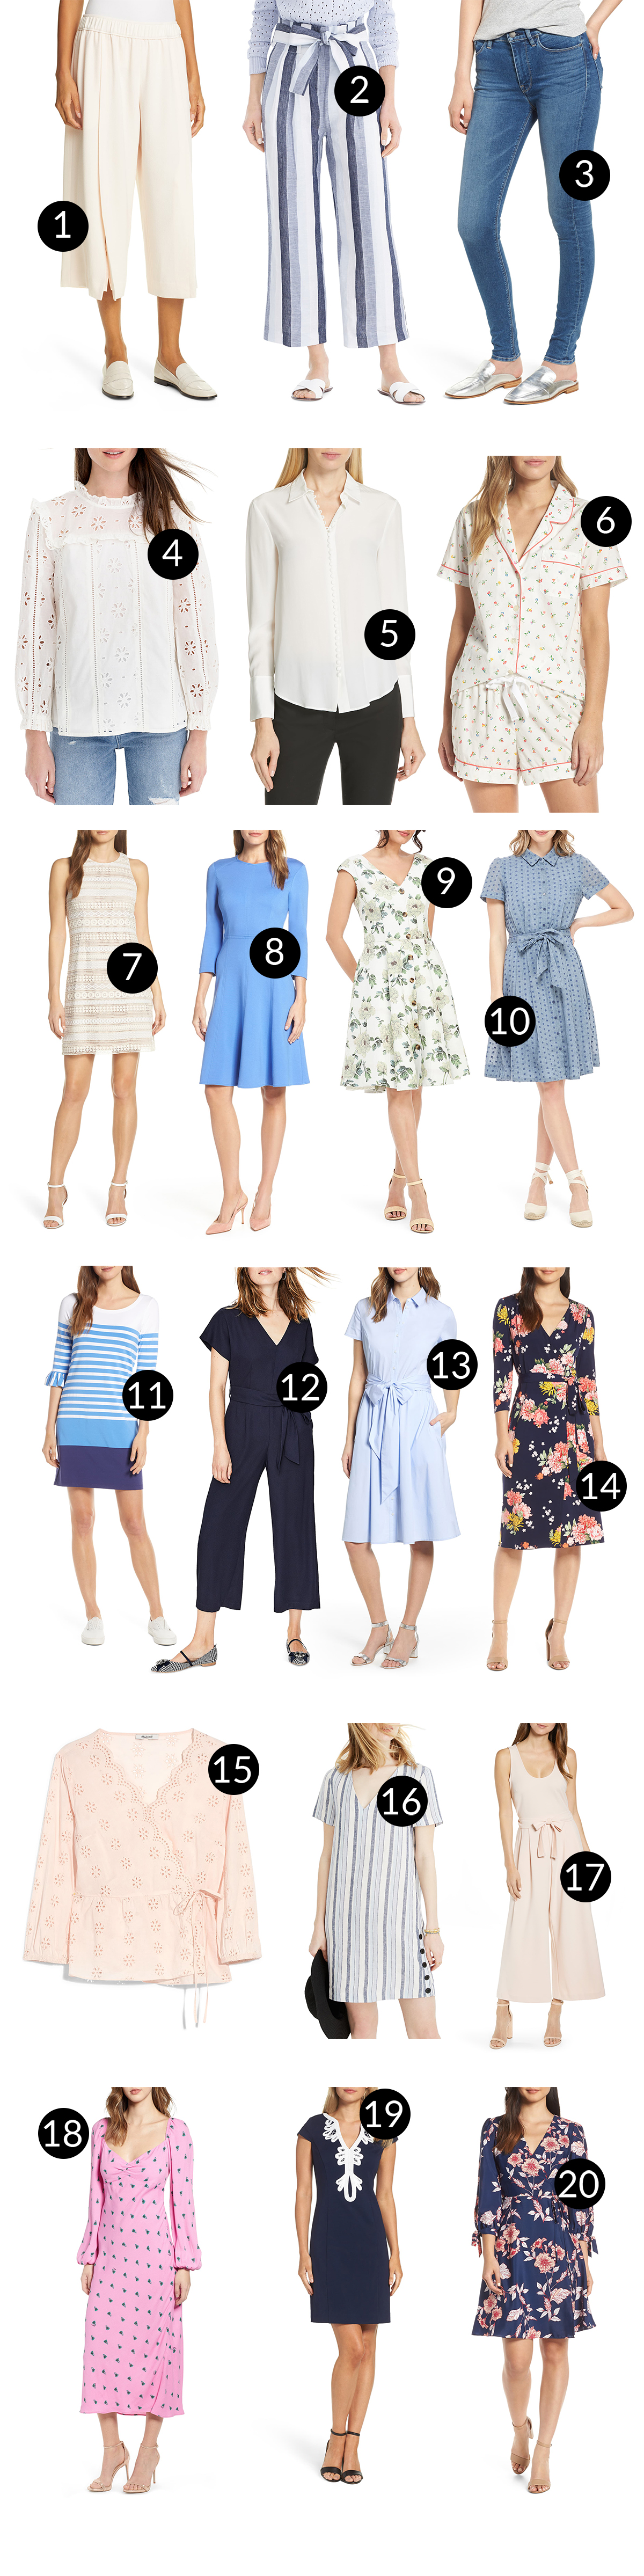 Nordstrom Clothing (Half-Yearly Sale)